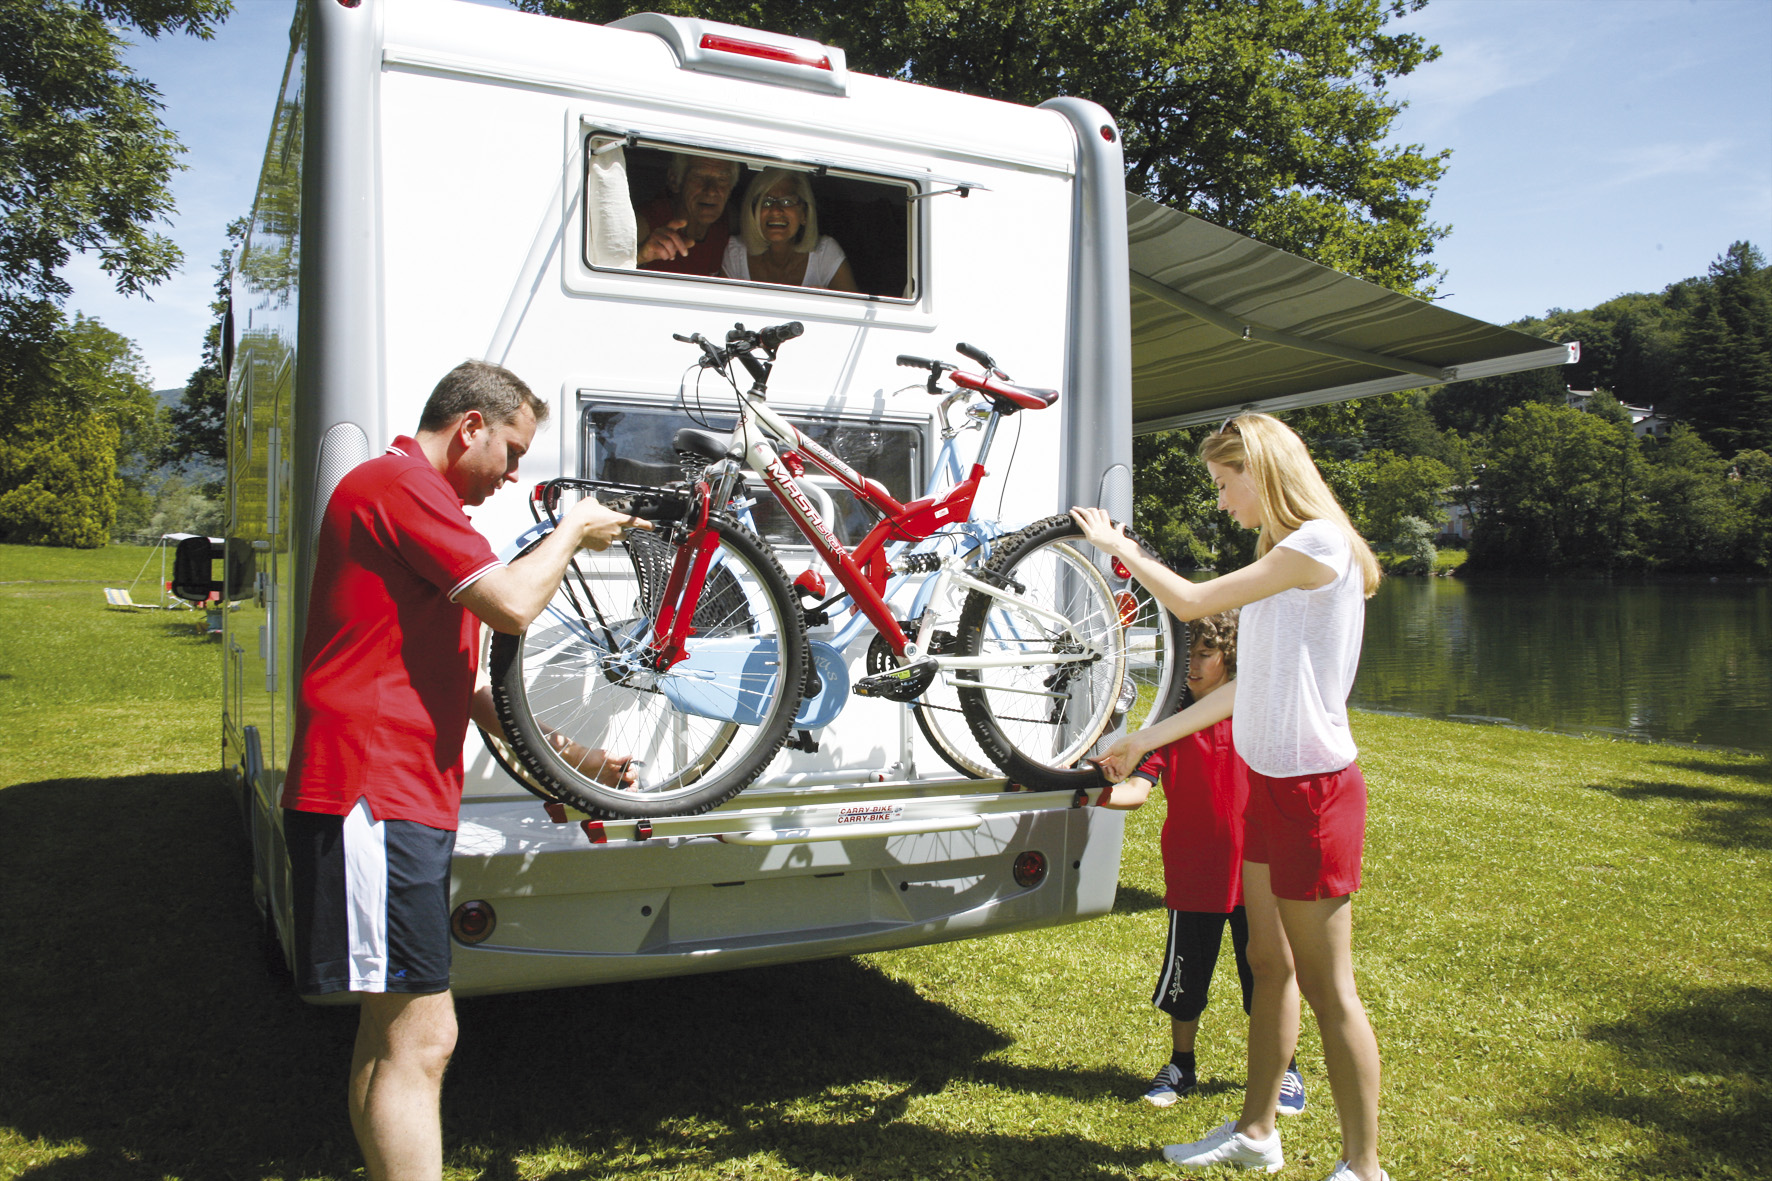 Cycle Carriers and Bike Racks for Caravans and Motorhomes